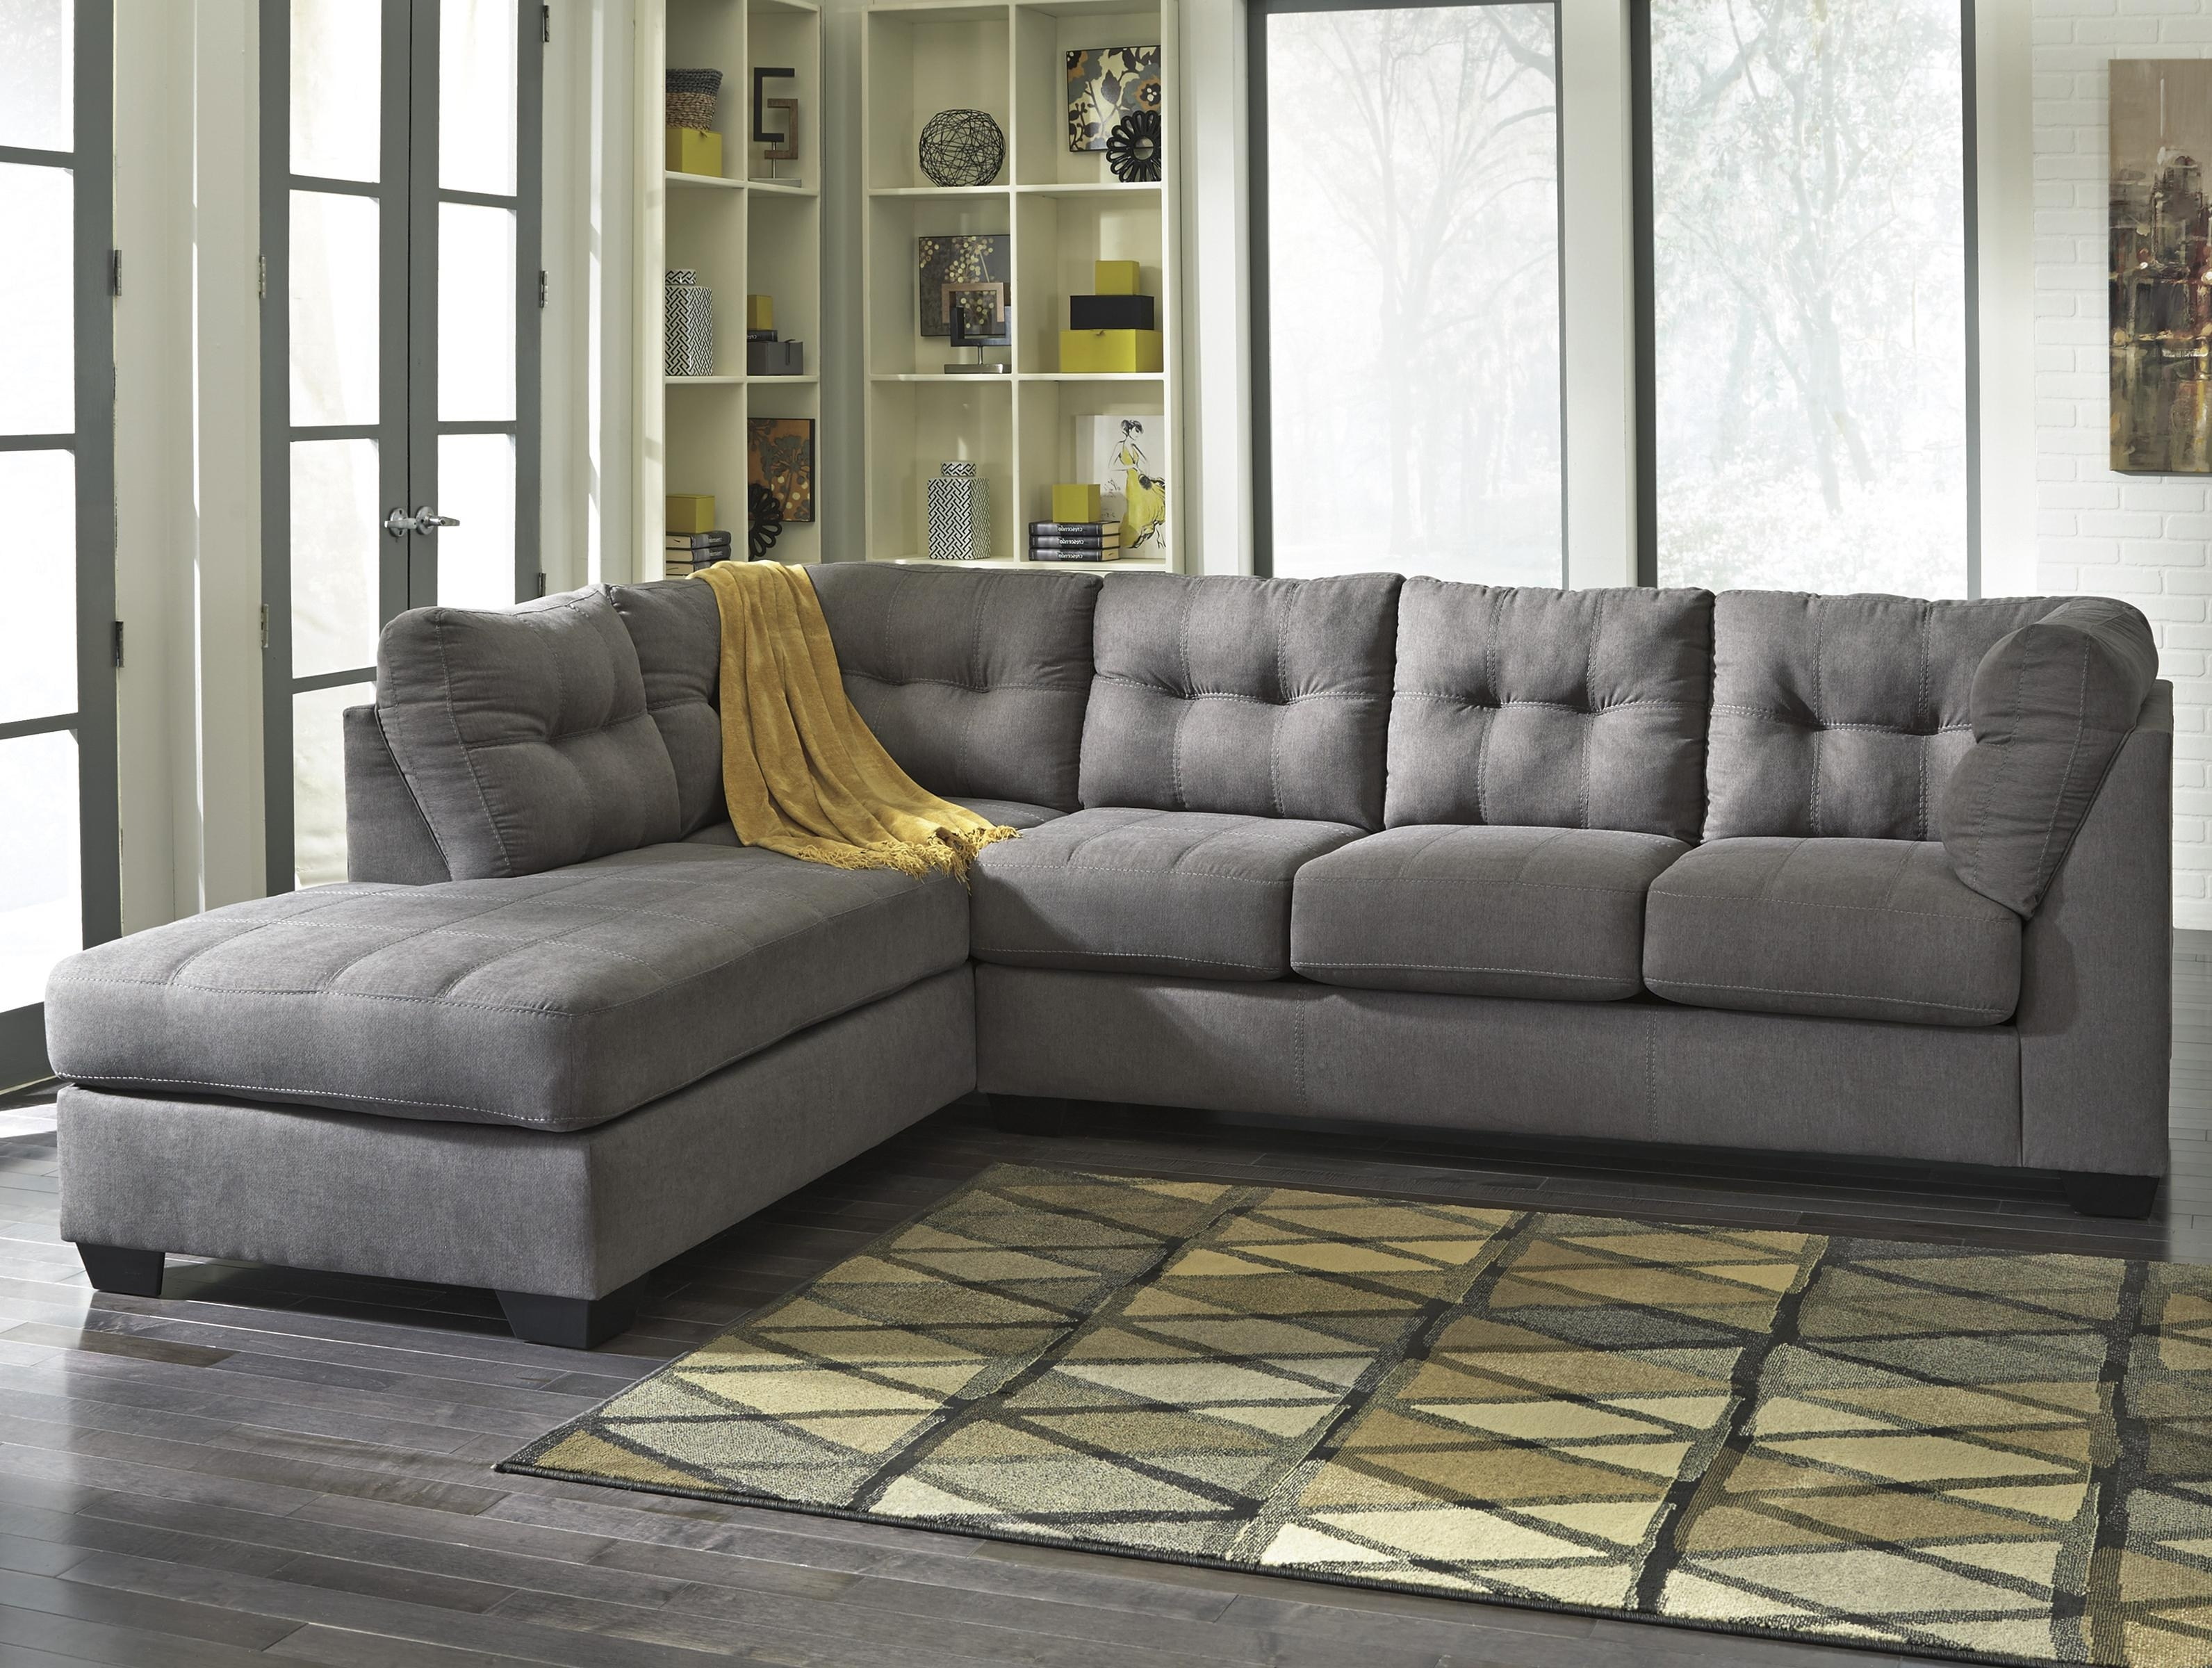 Choosing 2 Piece Sectional Sofa – Elites Home Decor Throughout Kerri 2 Piece Sectionals With Laf Chaise (Image 4 of 25)